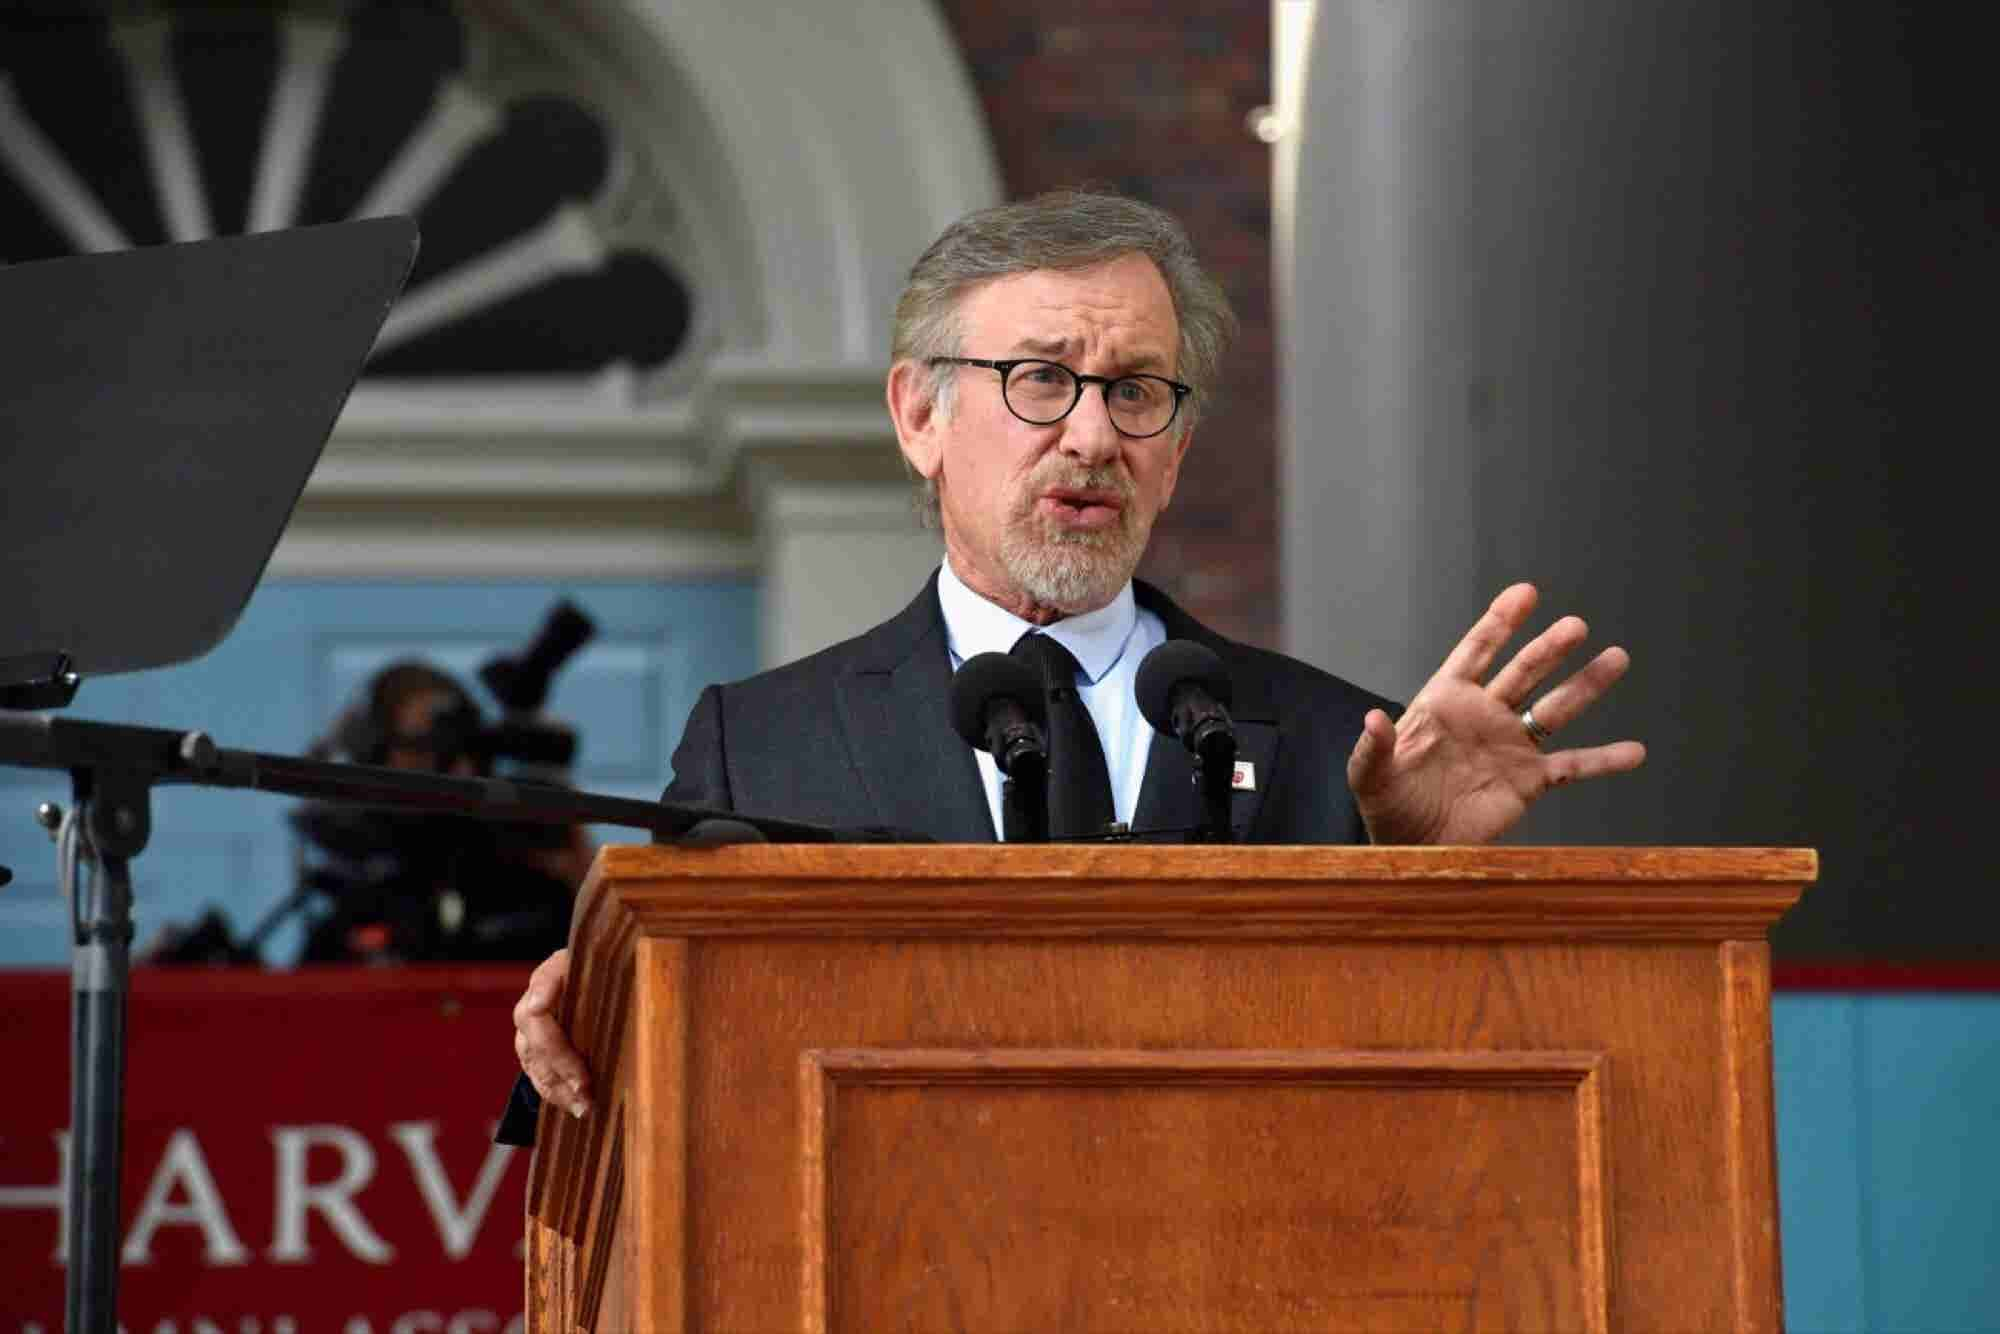 Steven Spielberg Commencement Speech, Harvard University, May 2016 (Transcript)